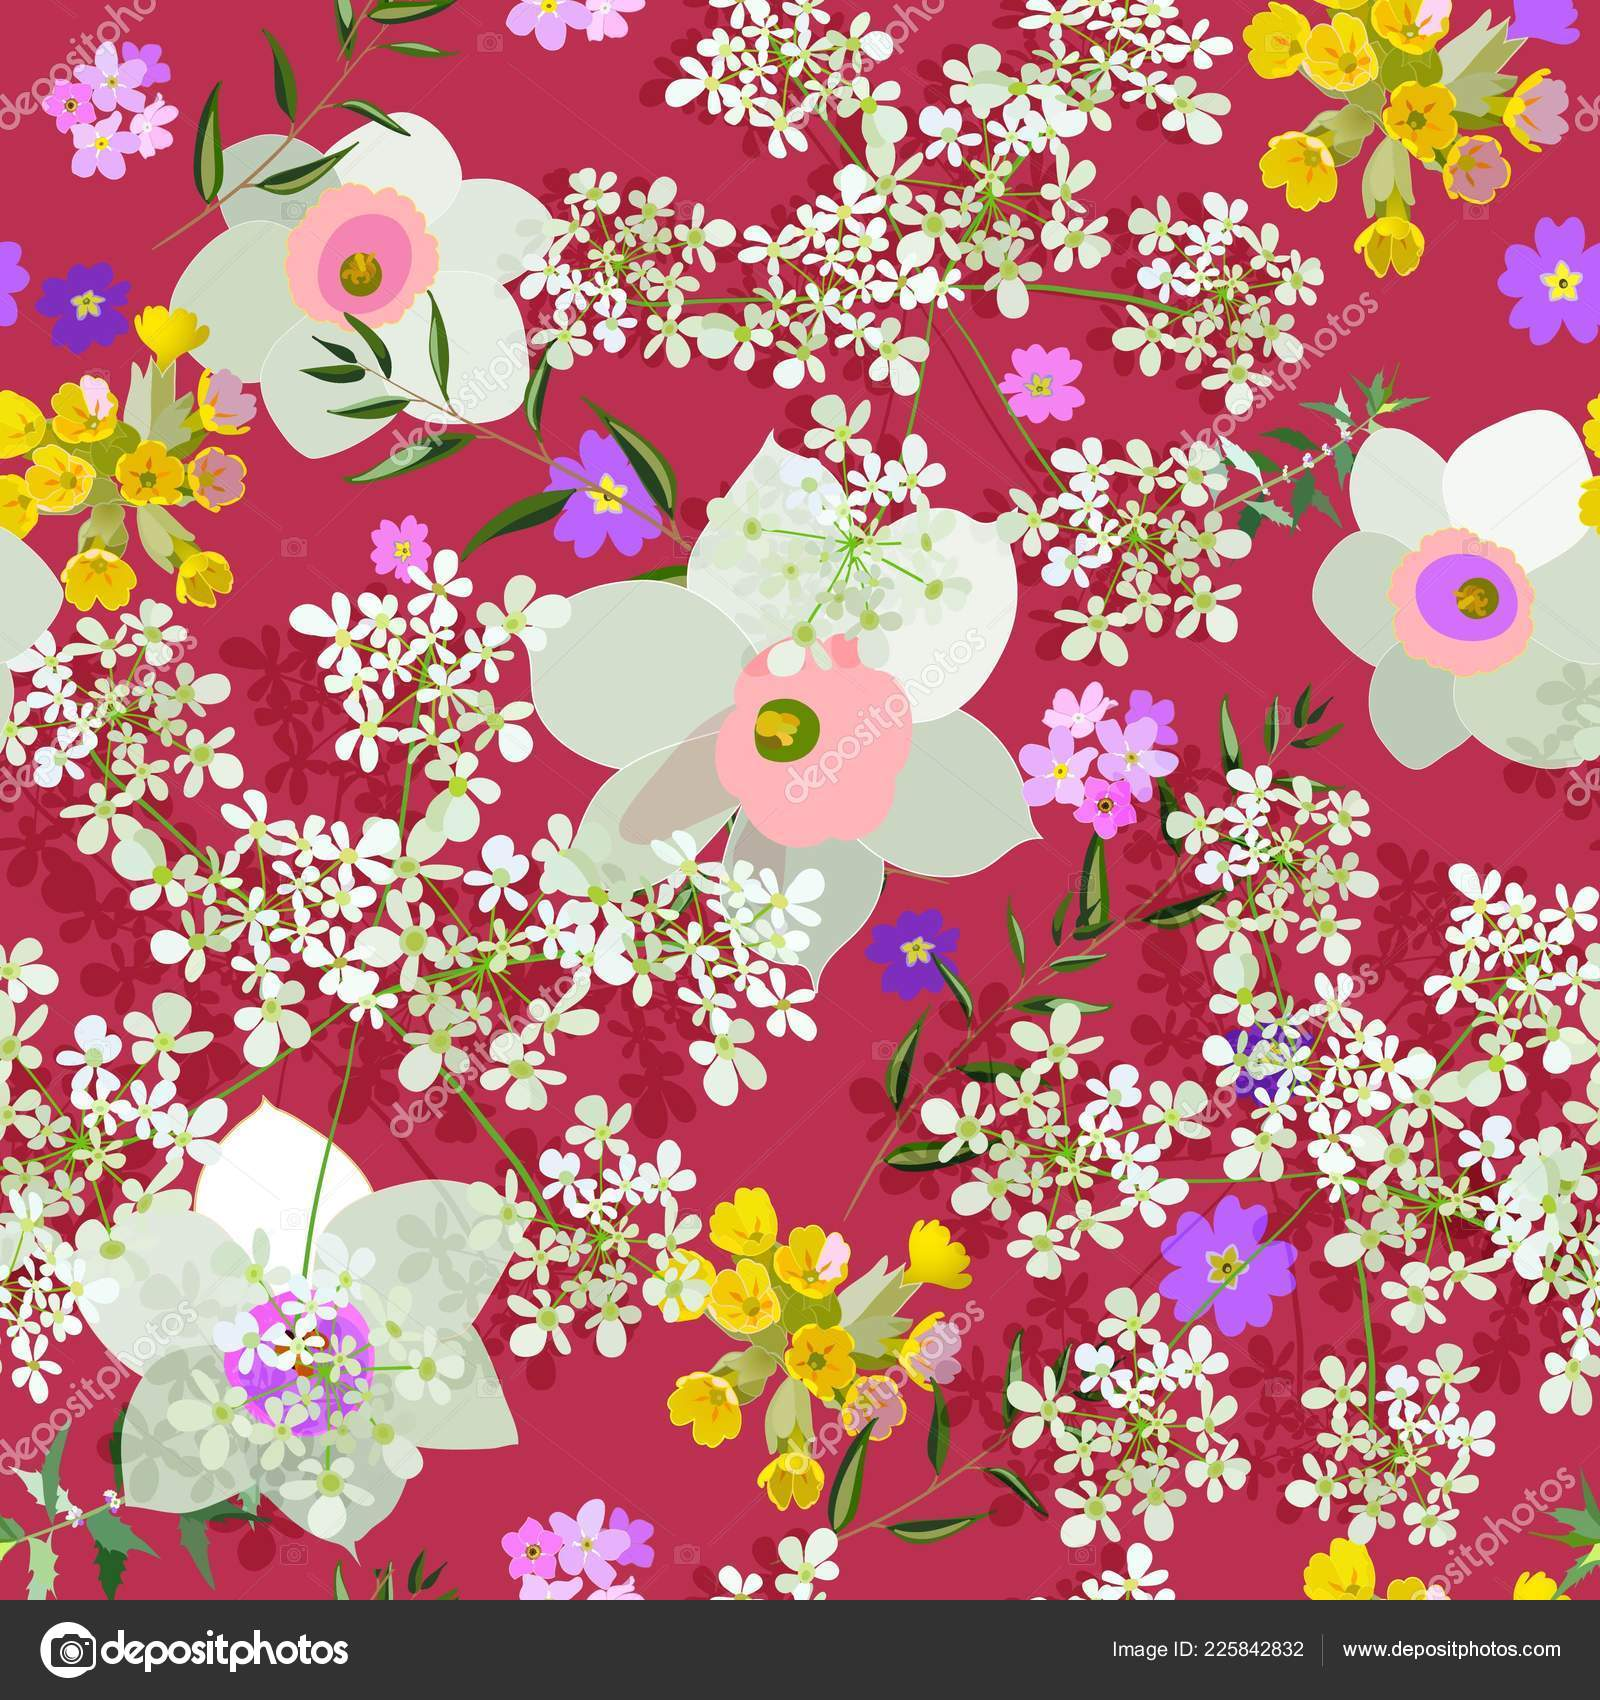 Amazing Seamless Floral Pattern Bright Colorful Flowers Leaves